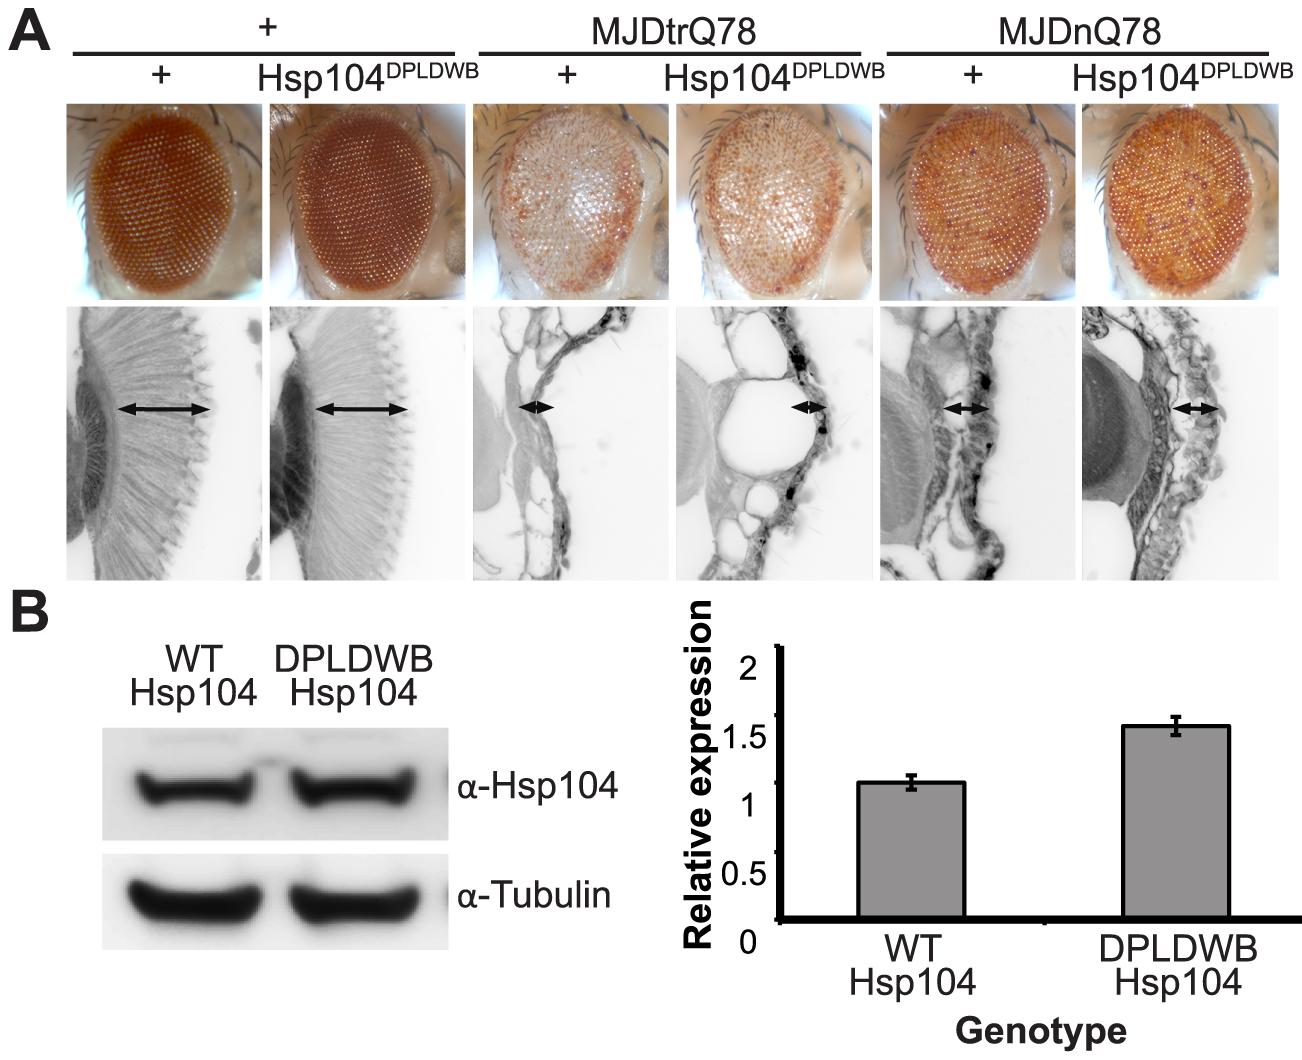 ATPase activity and substrate binding are required for Hsp104 to modulate disease.